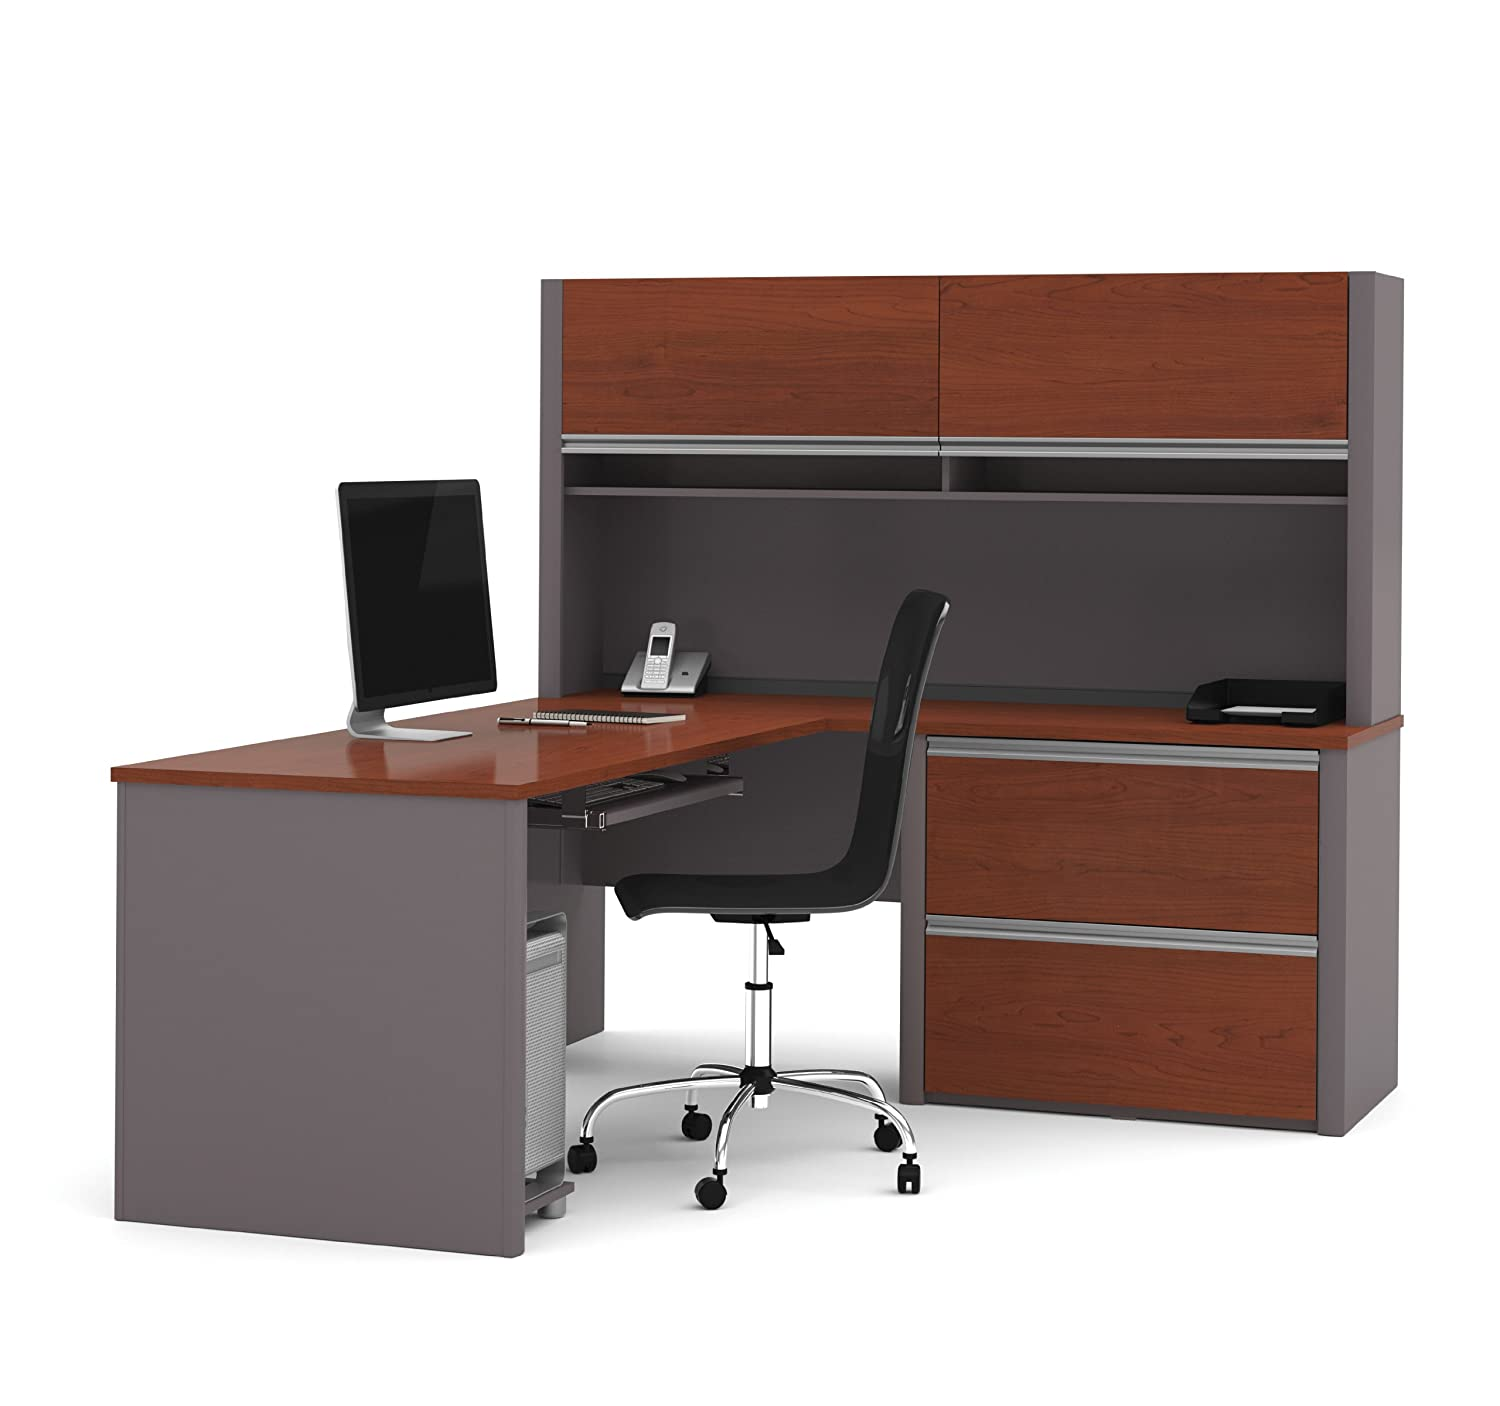 mgh shop hon lshaped used orlando desks office interiors desk tampa l shaped furniture vision